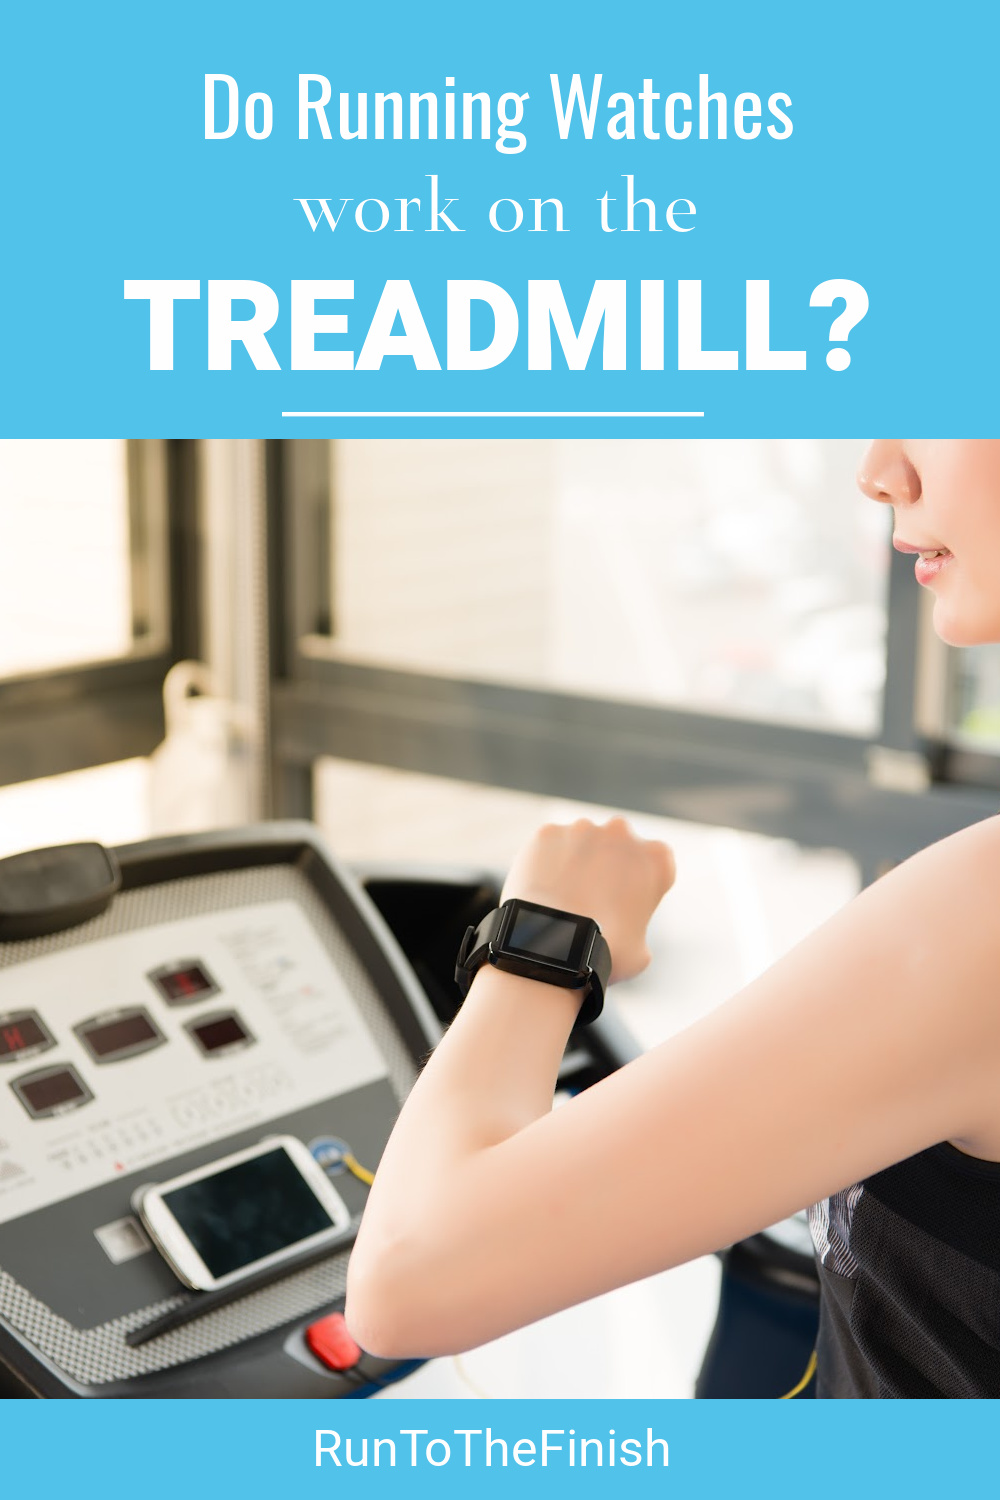 Is the Treadmill or My Watch More Accurate